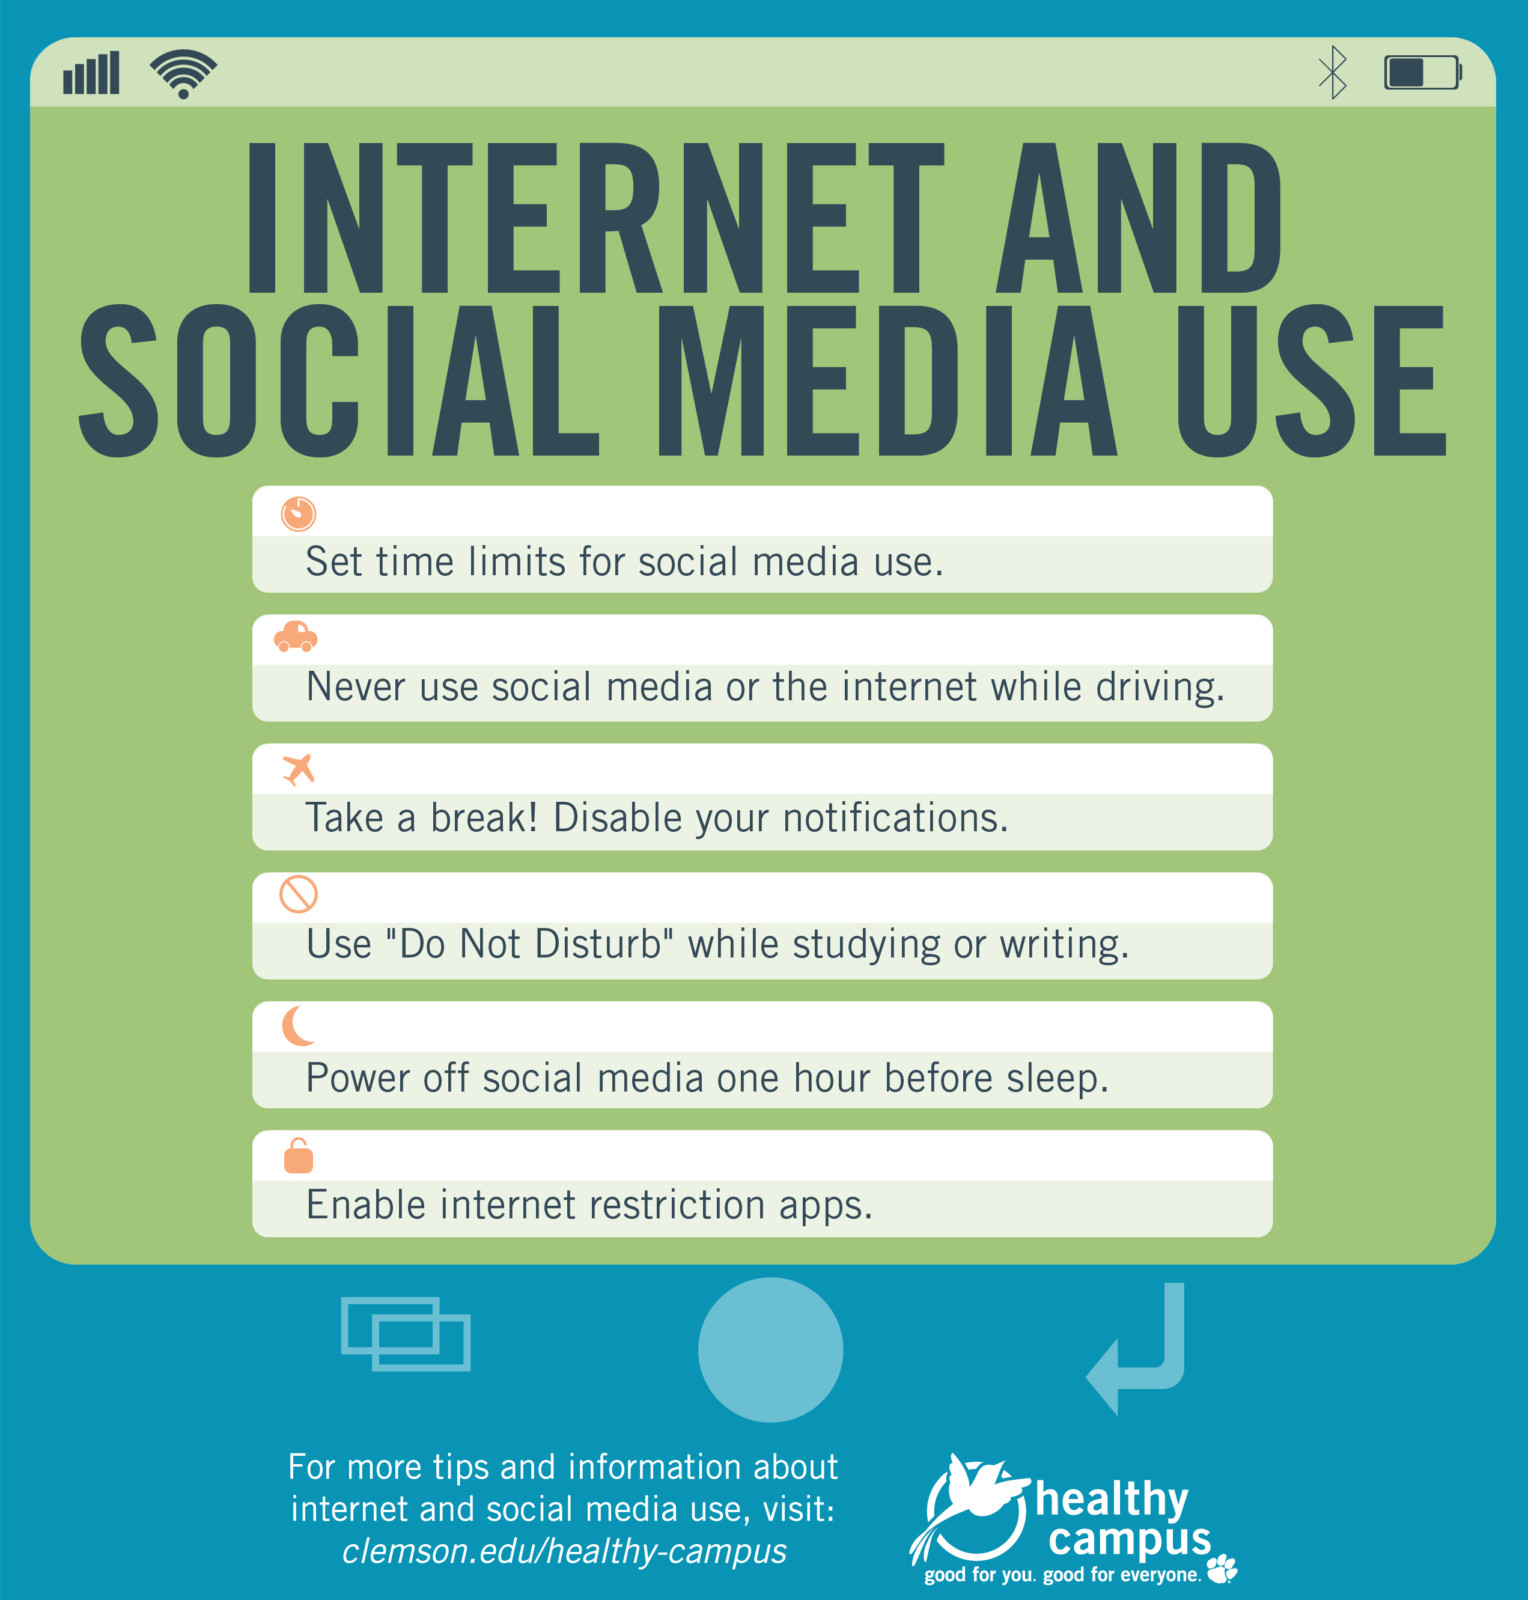 Internet and Social Media Use